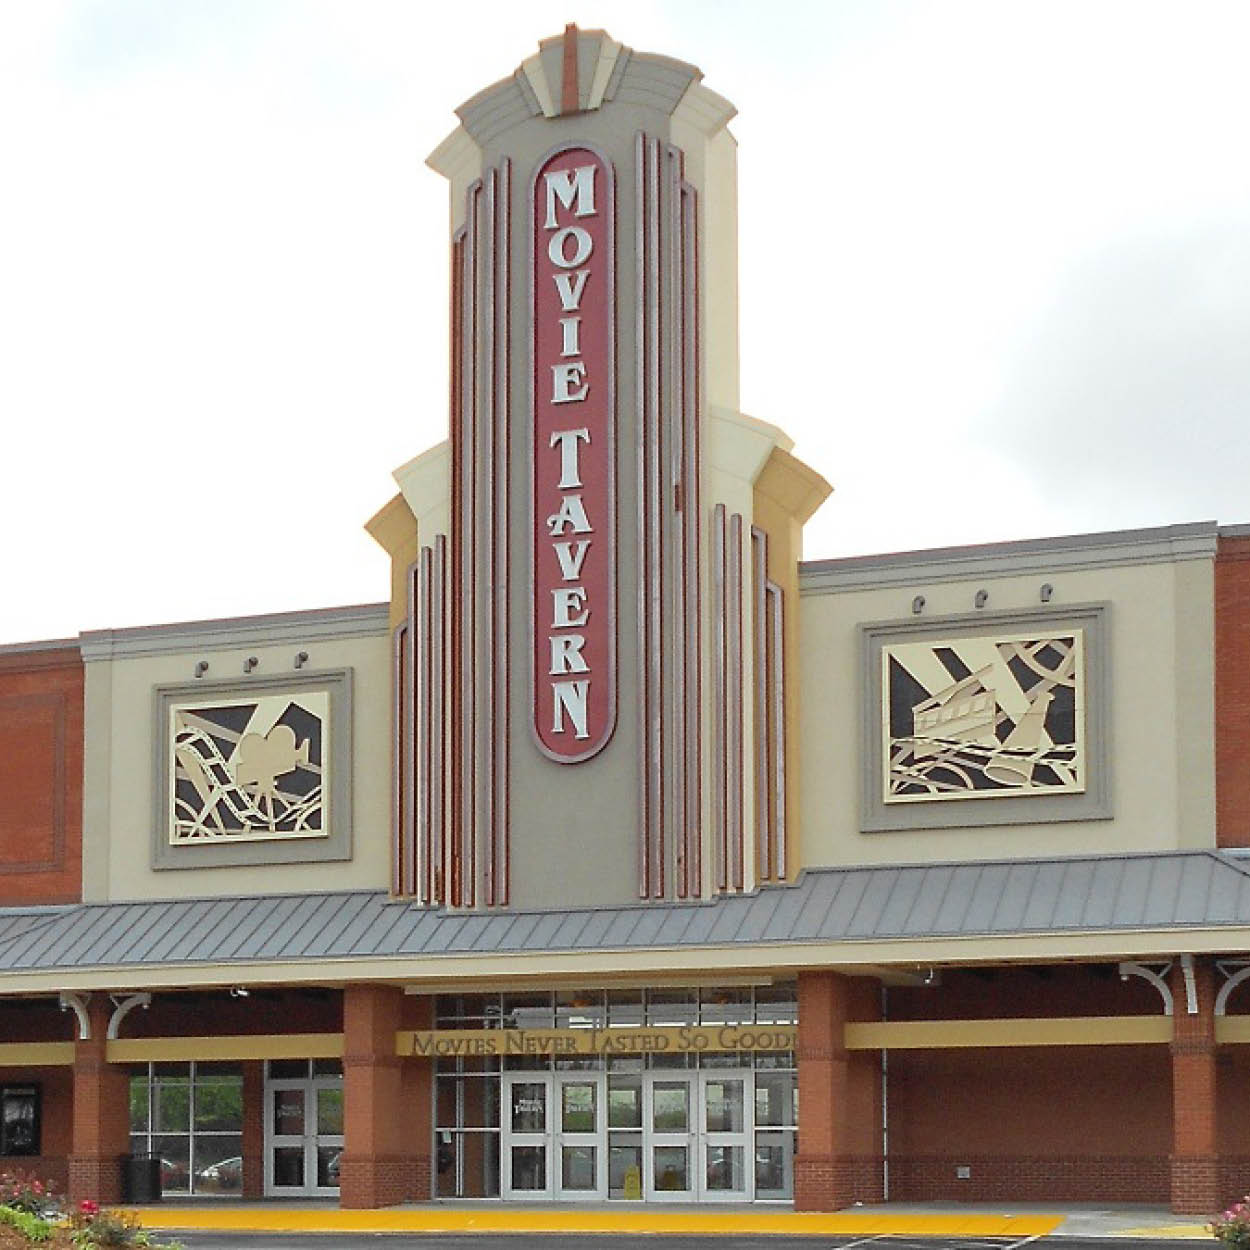 Horizon Village Cinema